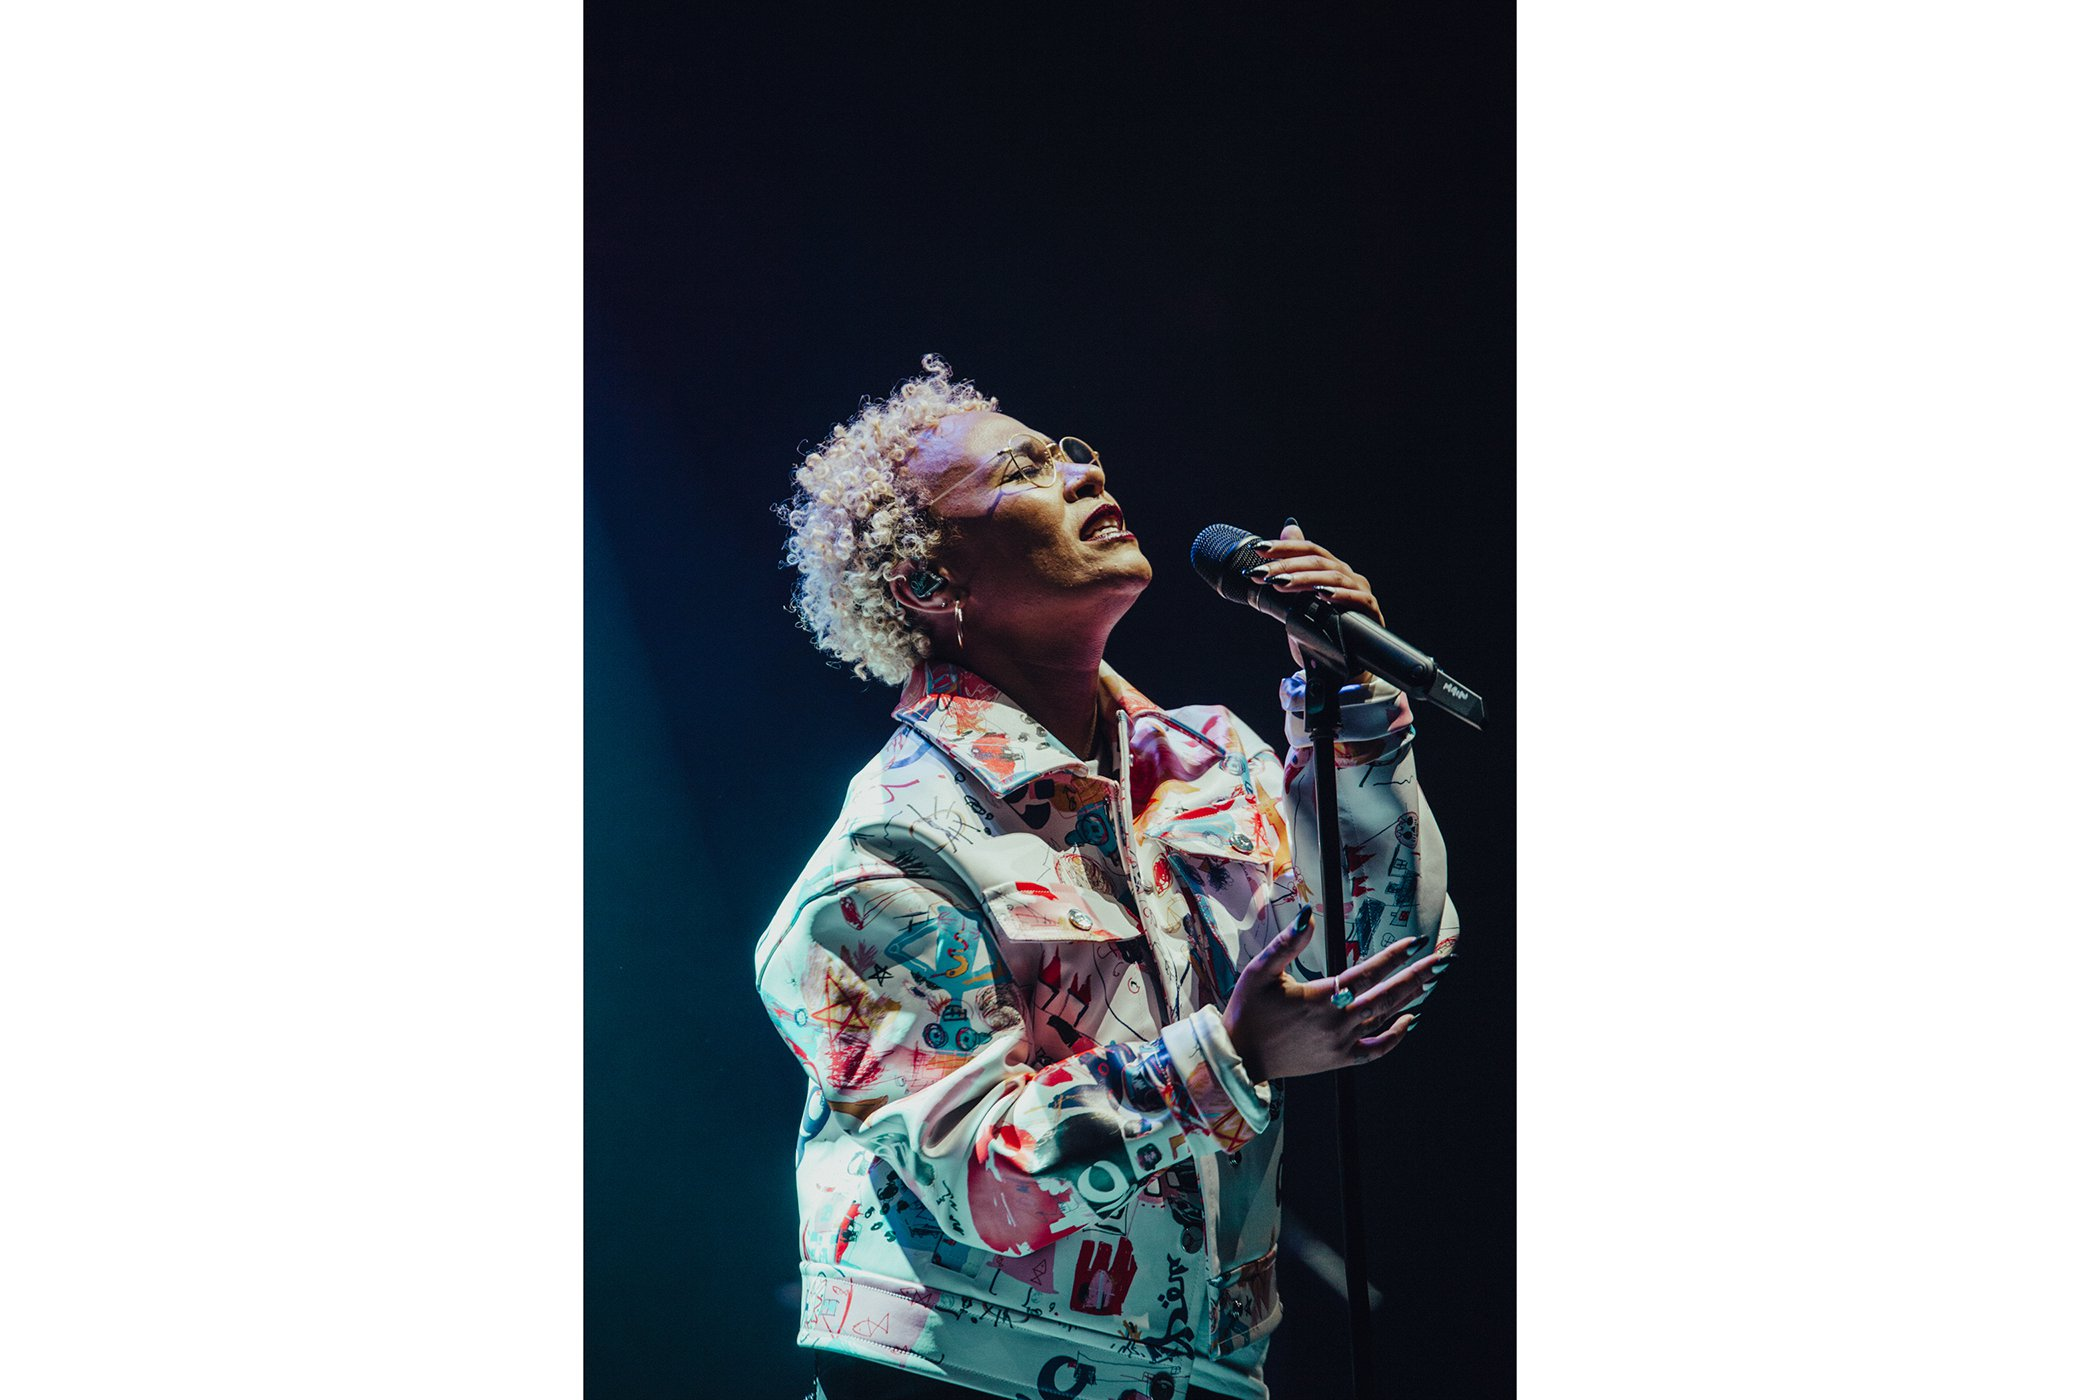 GCLiveLondon_EmeliSande_Emma Viola Lilja for Global Citizen_013.jpg